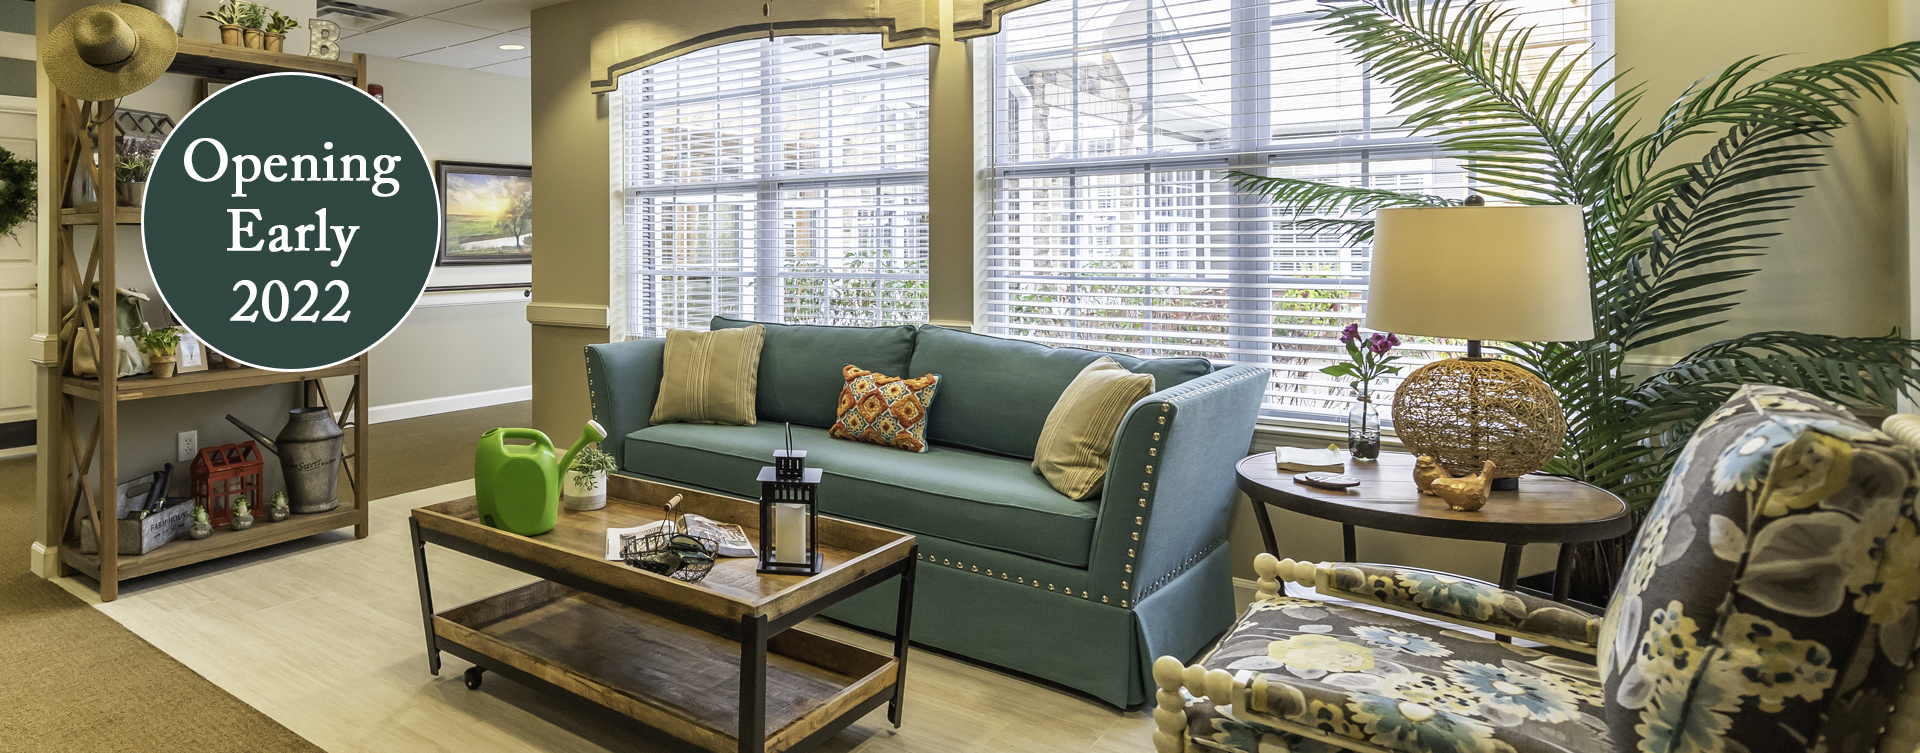 Curl up with a good book in the sunroom at Bickford of Chesapeake